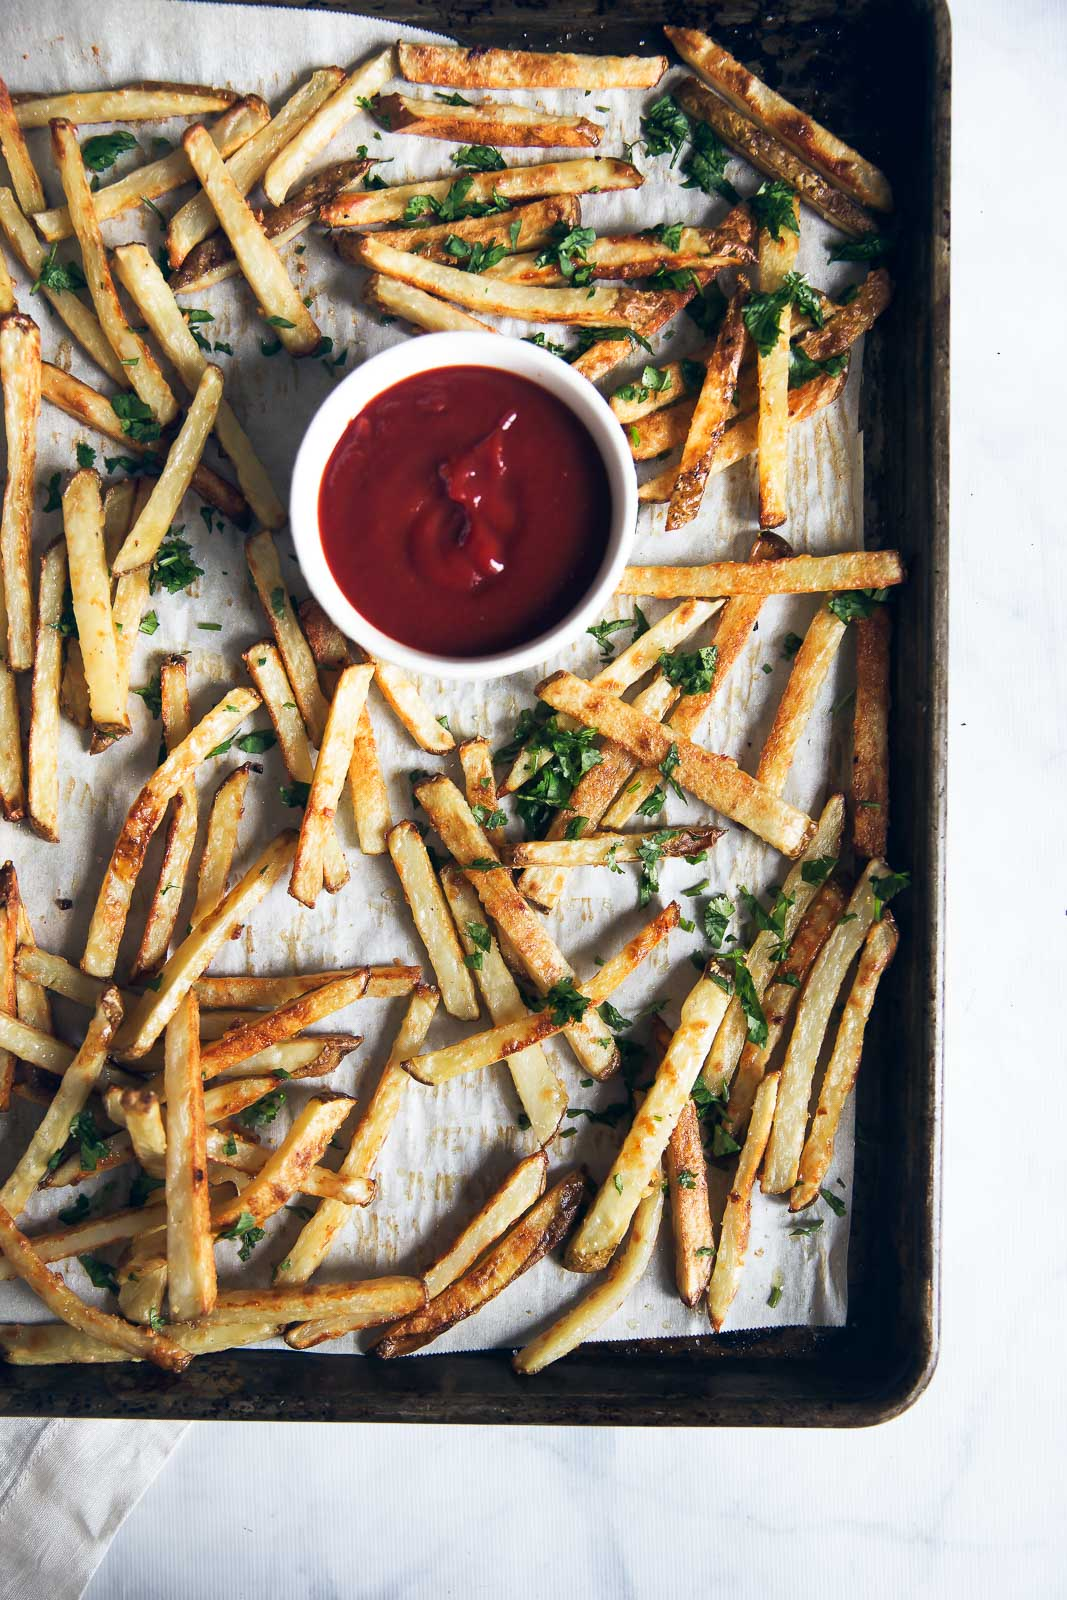 homemade healthy baked french fries on a baking tray with ketchup